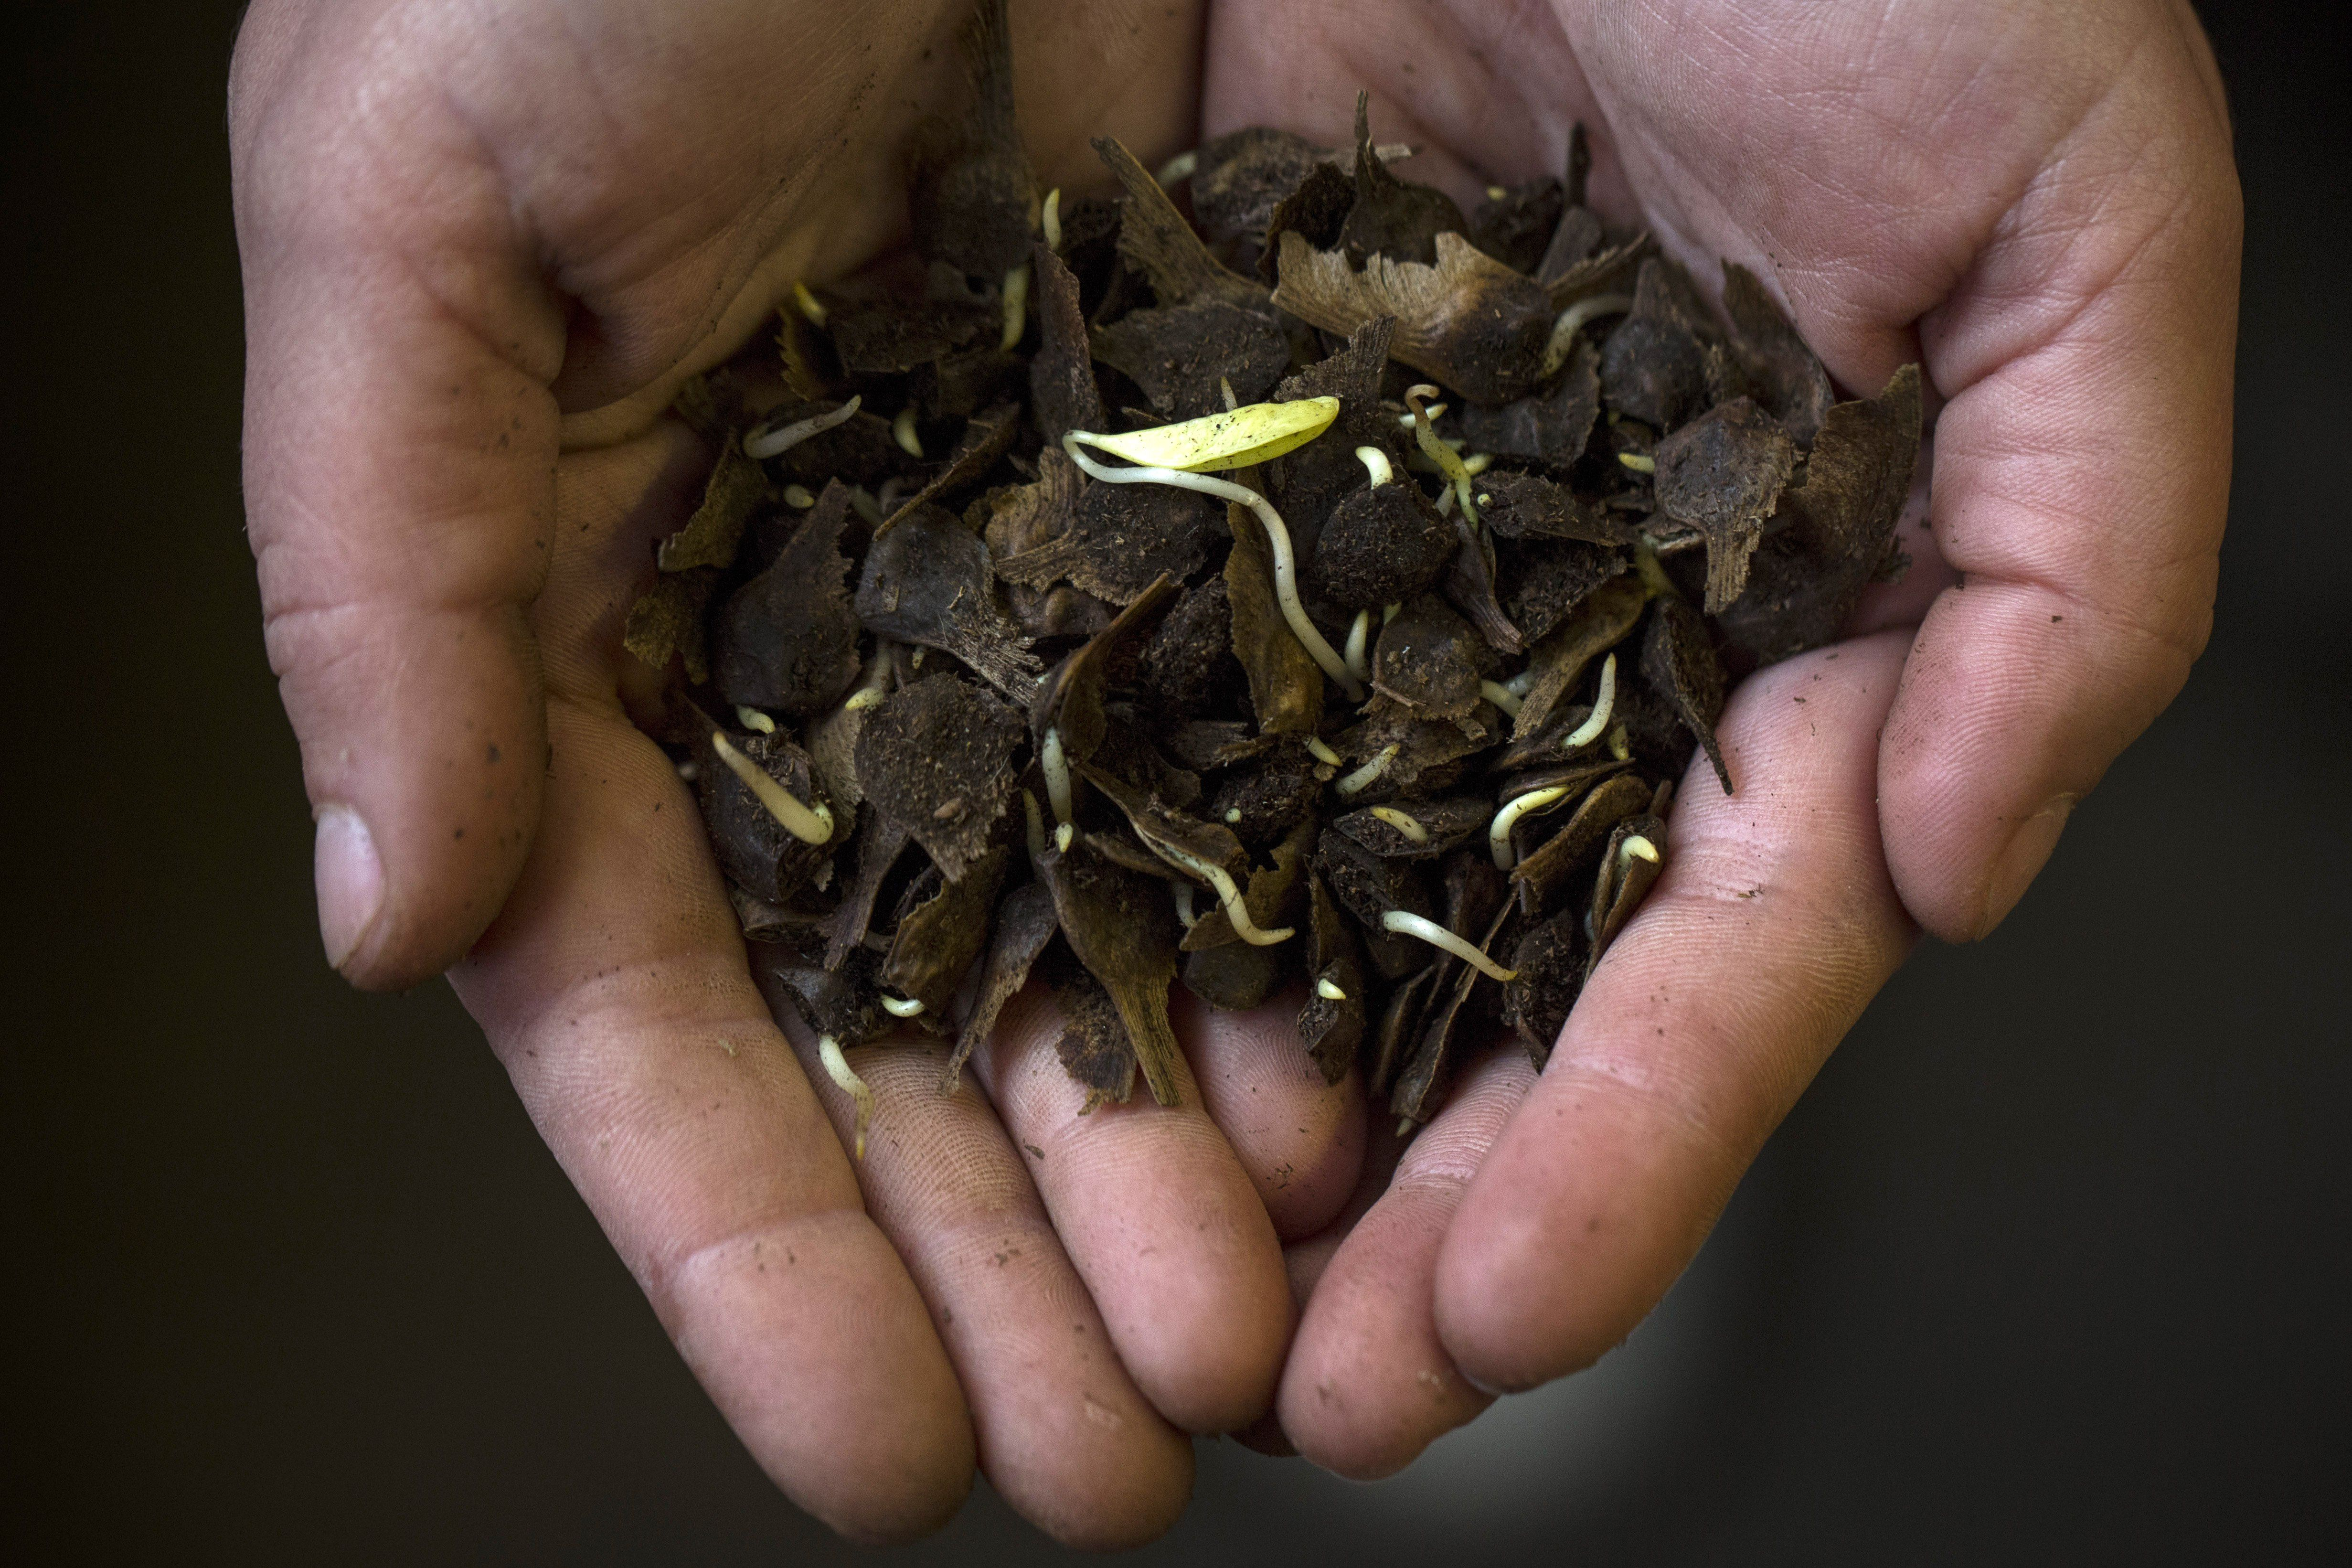 Germinating tree seeds in someone's hands